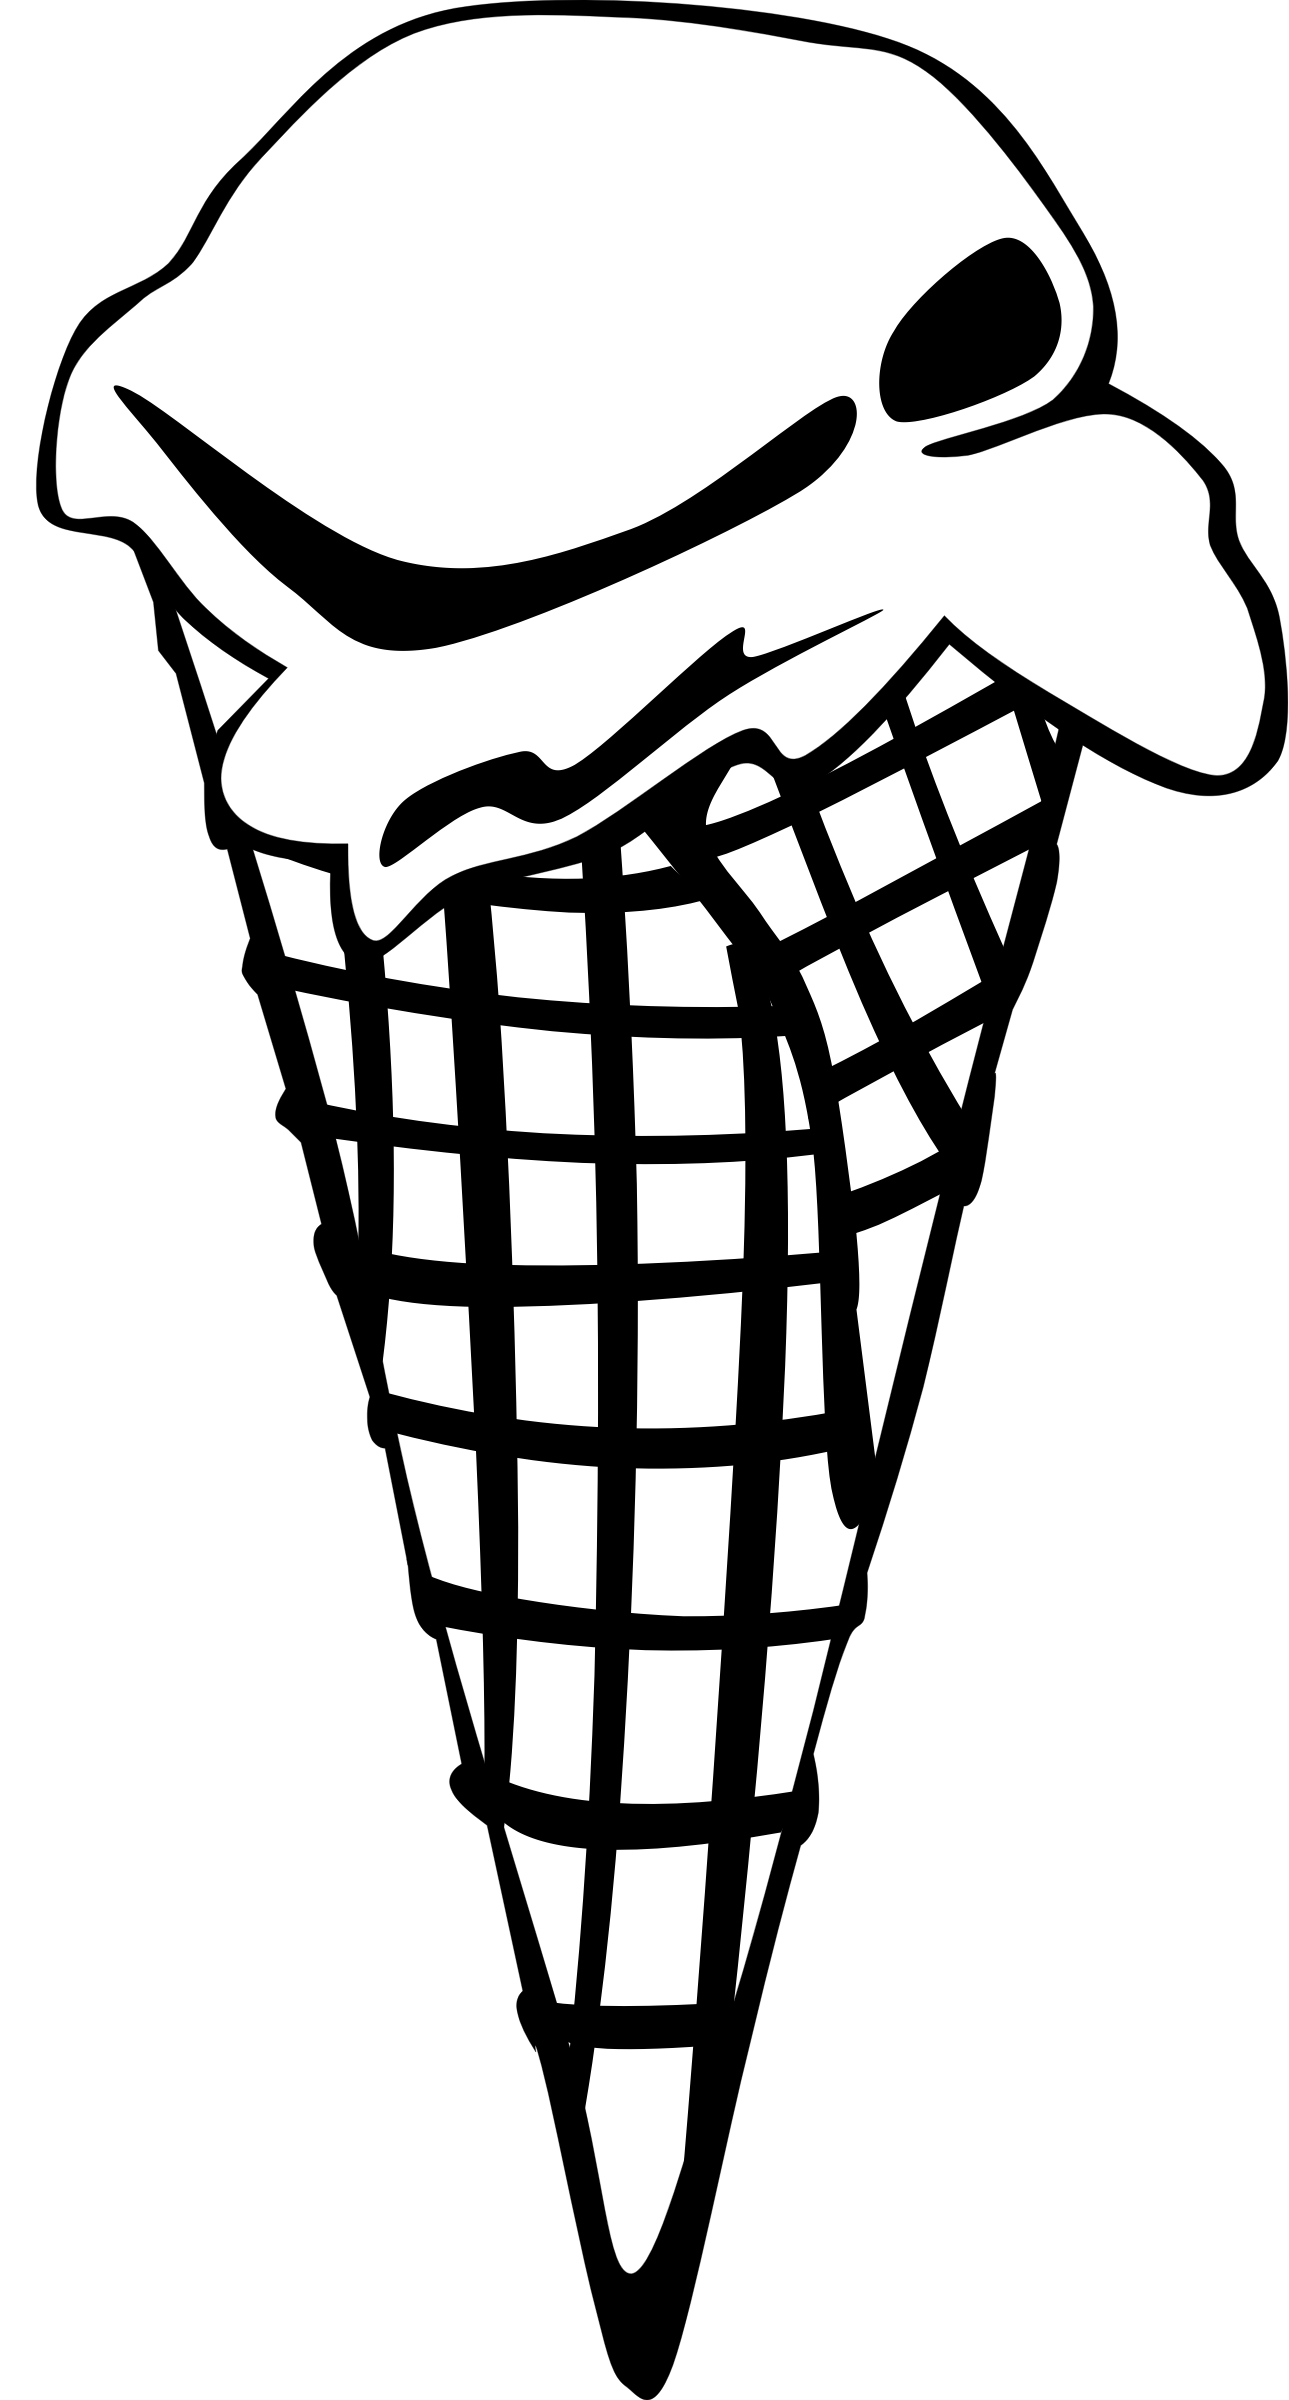 freeuse download Ice cream clipart black and white. Fast food desserts cones